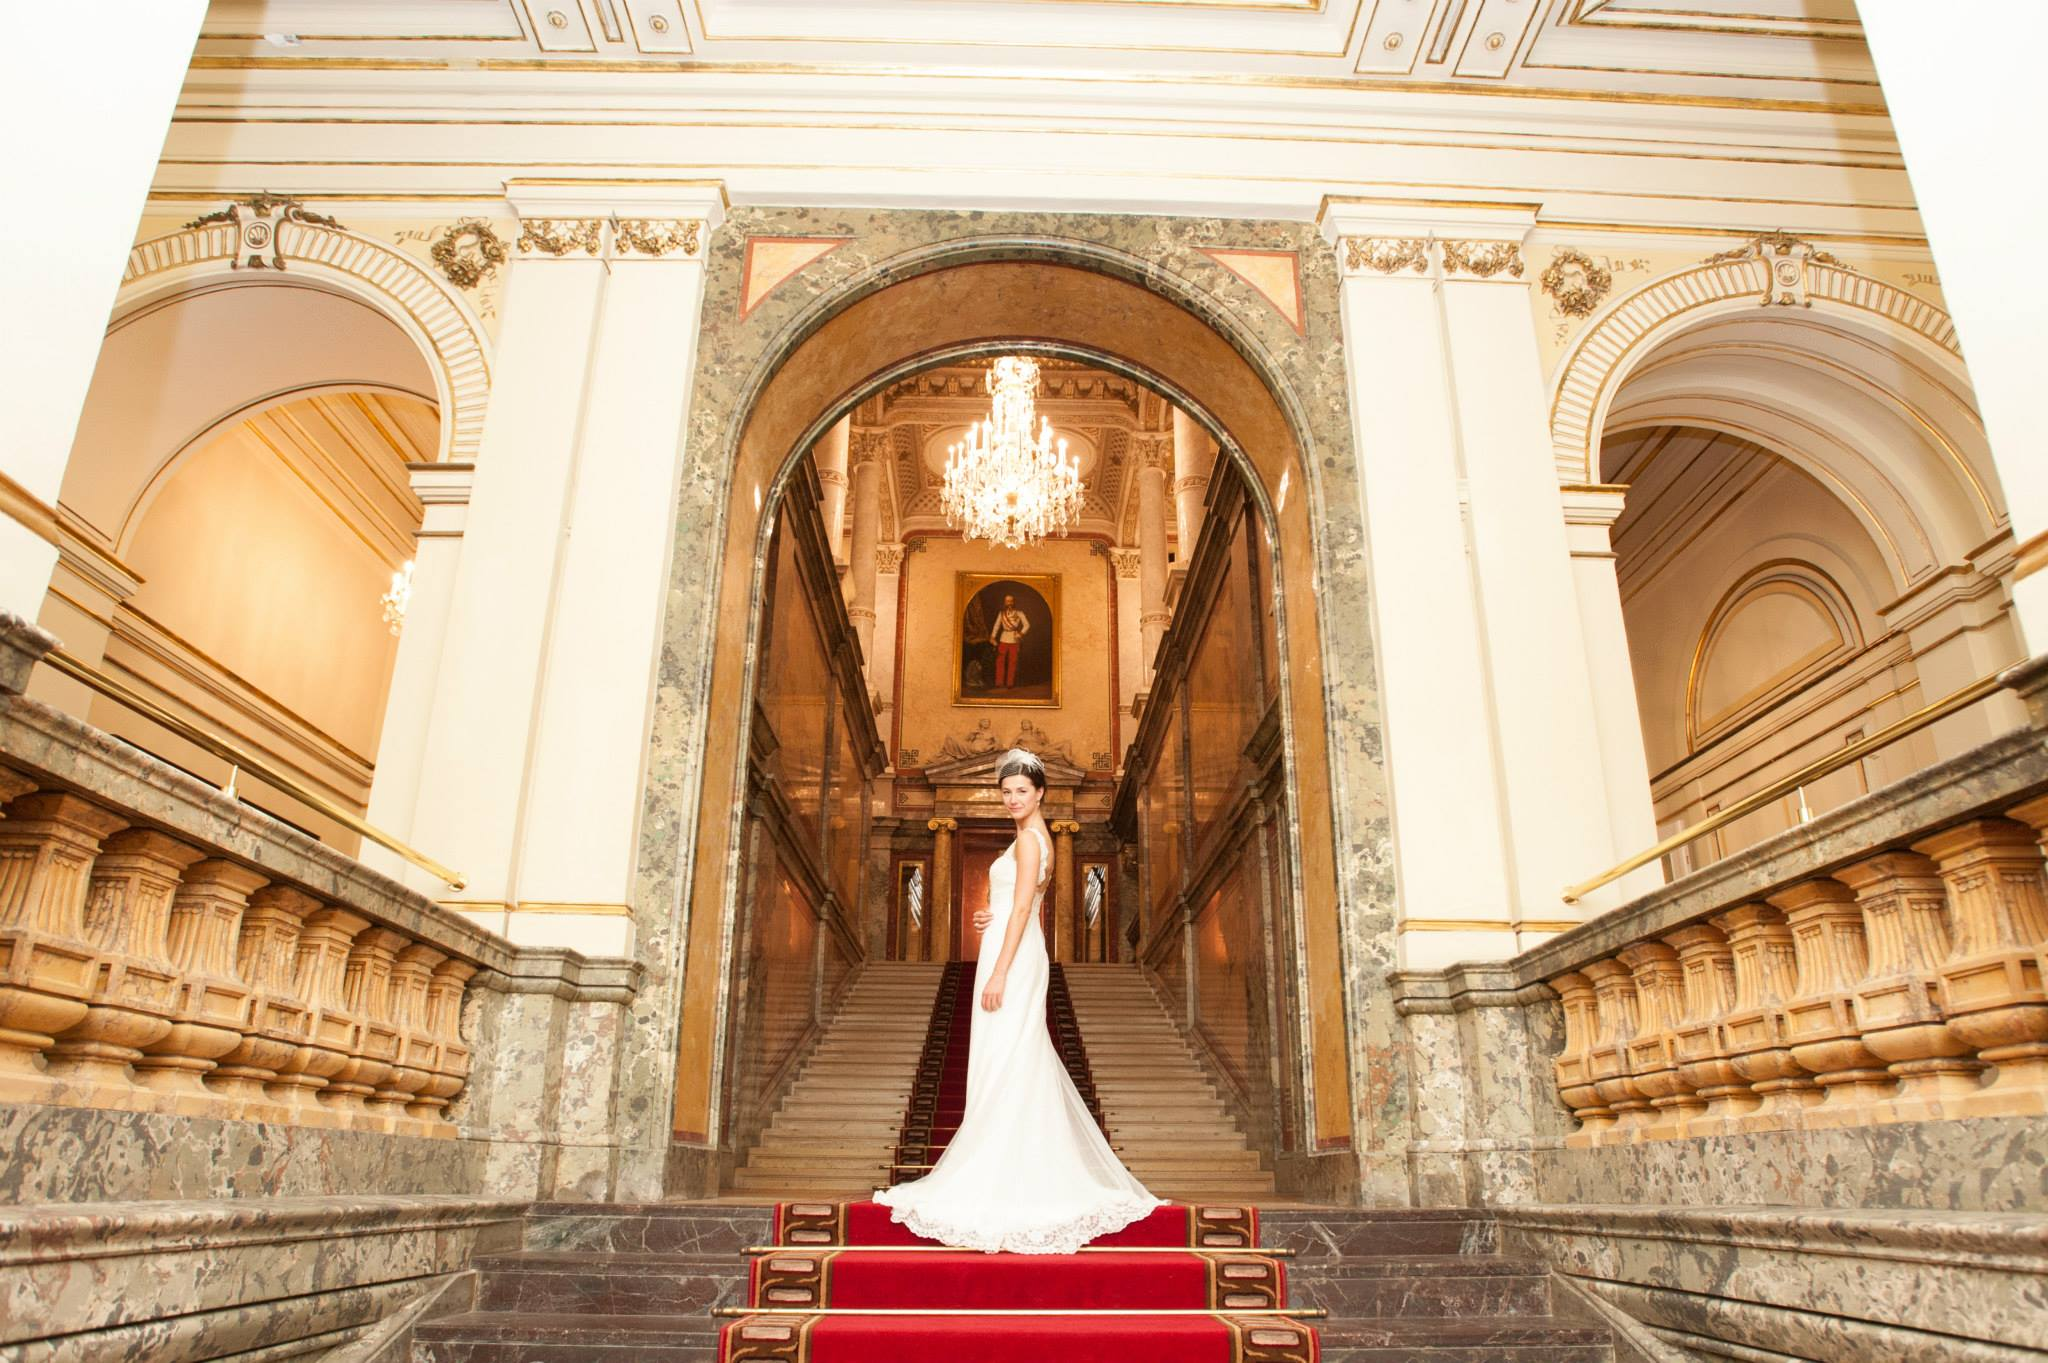 Canadian luxury destination wedding at Hotel Imperial Vienna Austria planned by international wedding planner Vienna High Emotion Weddings